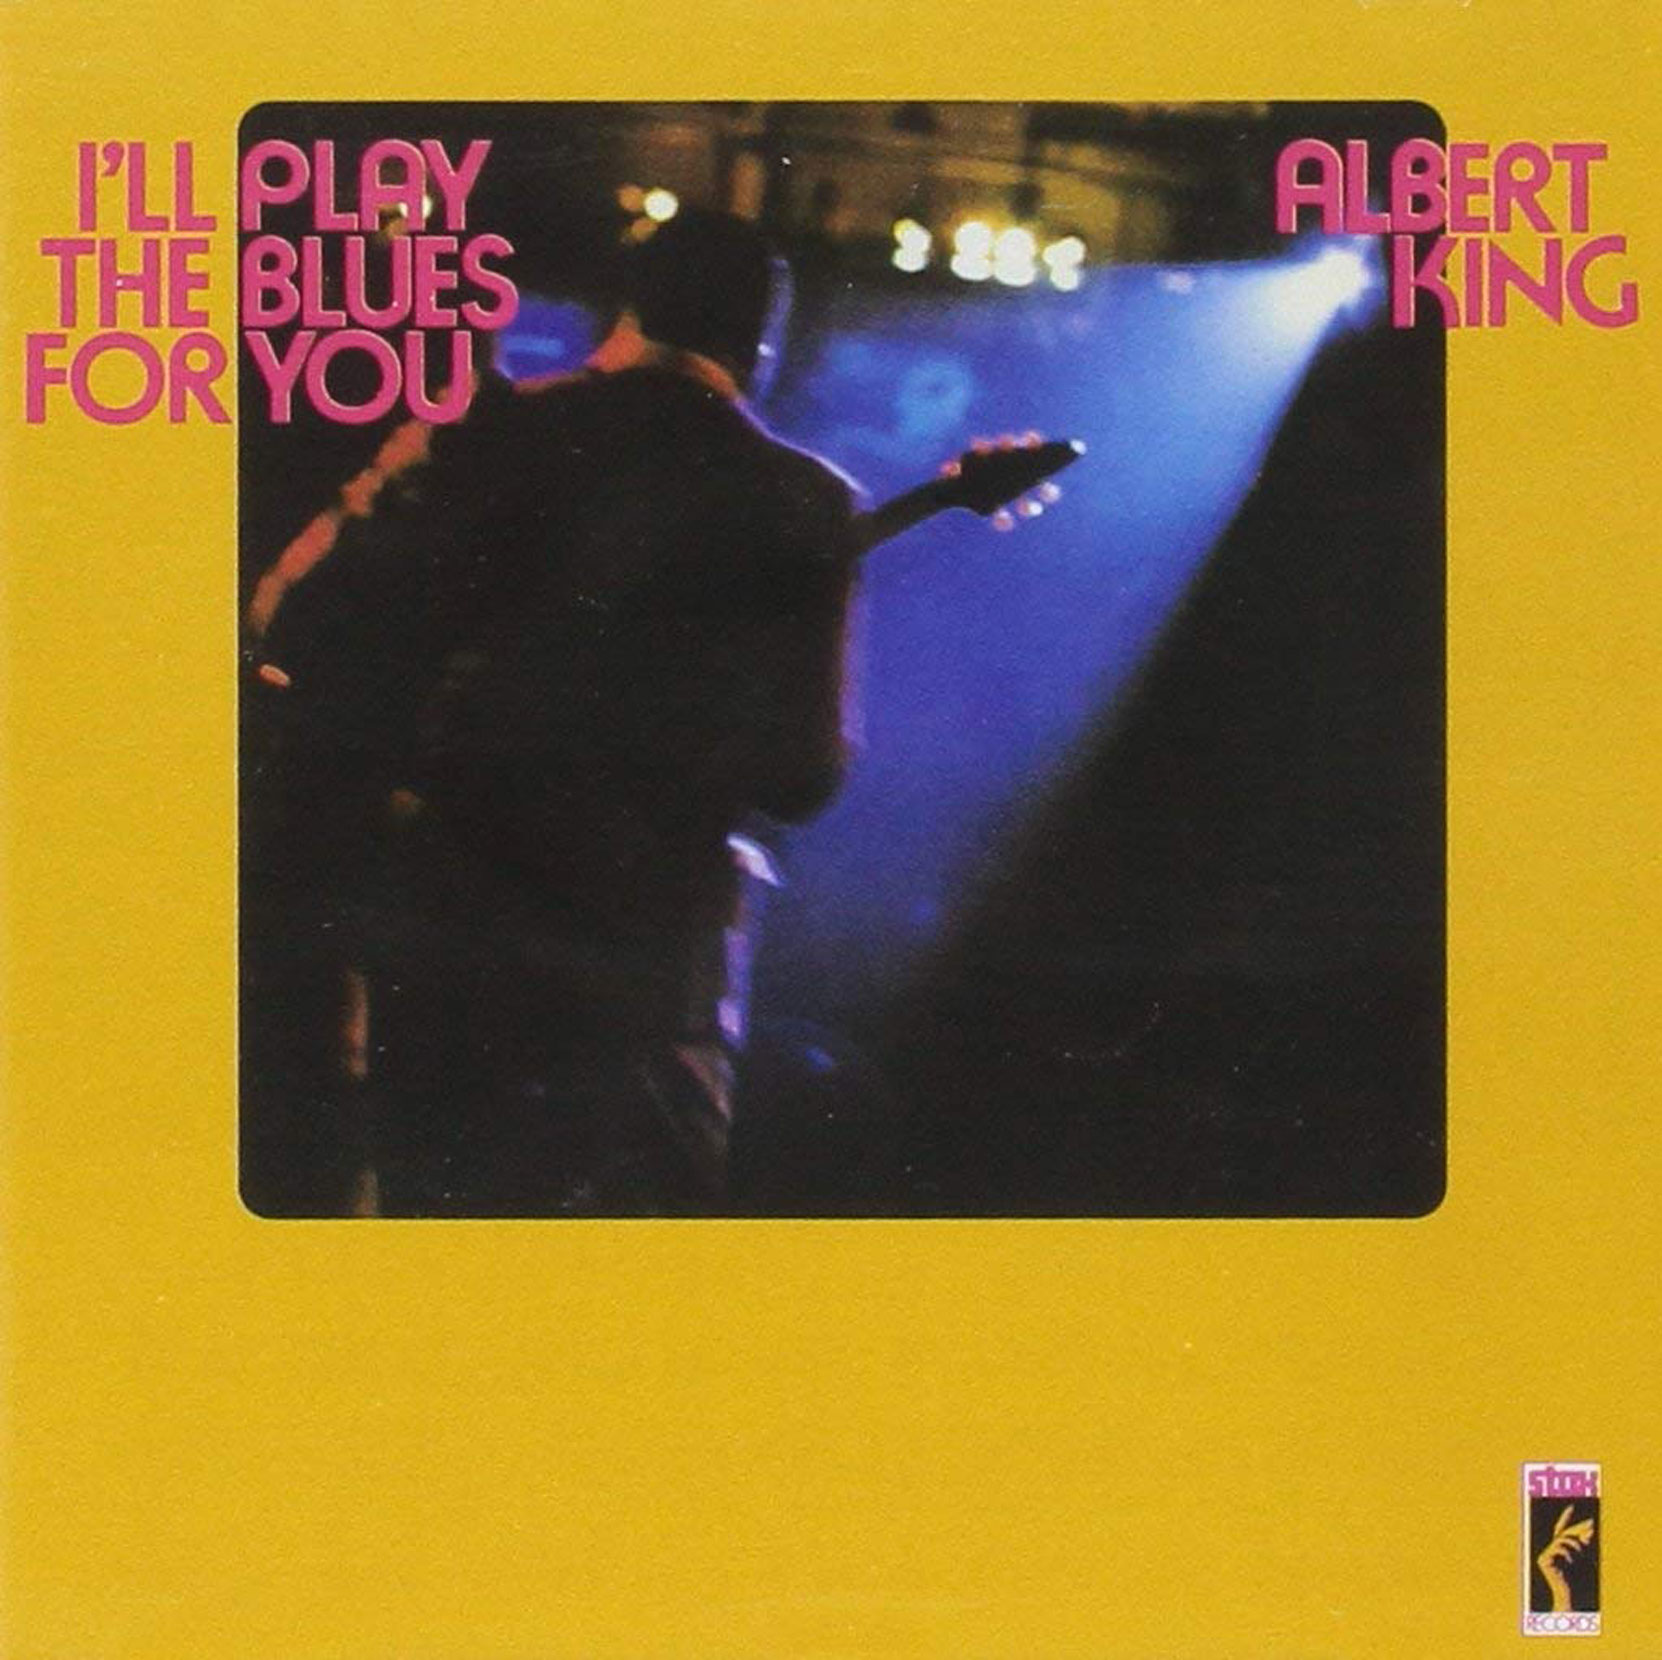 Albert King - I'll Play The Blues For You, released on Stax Records. CD cover.